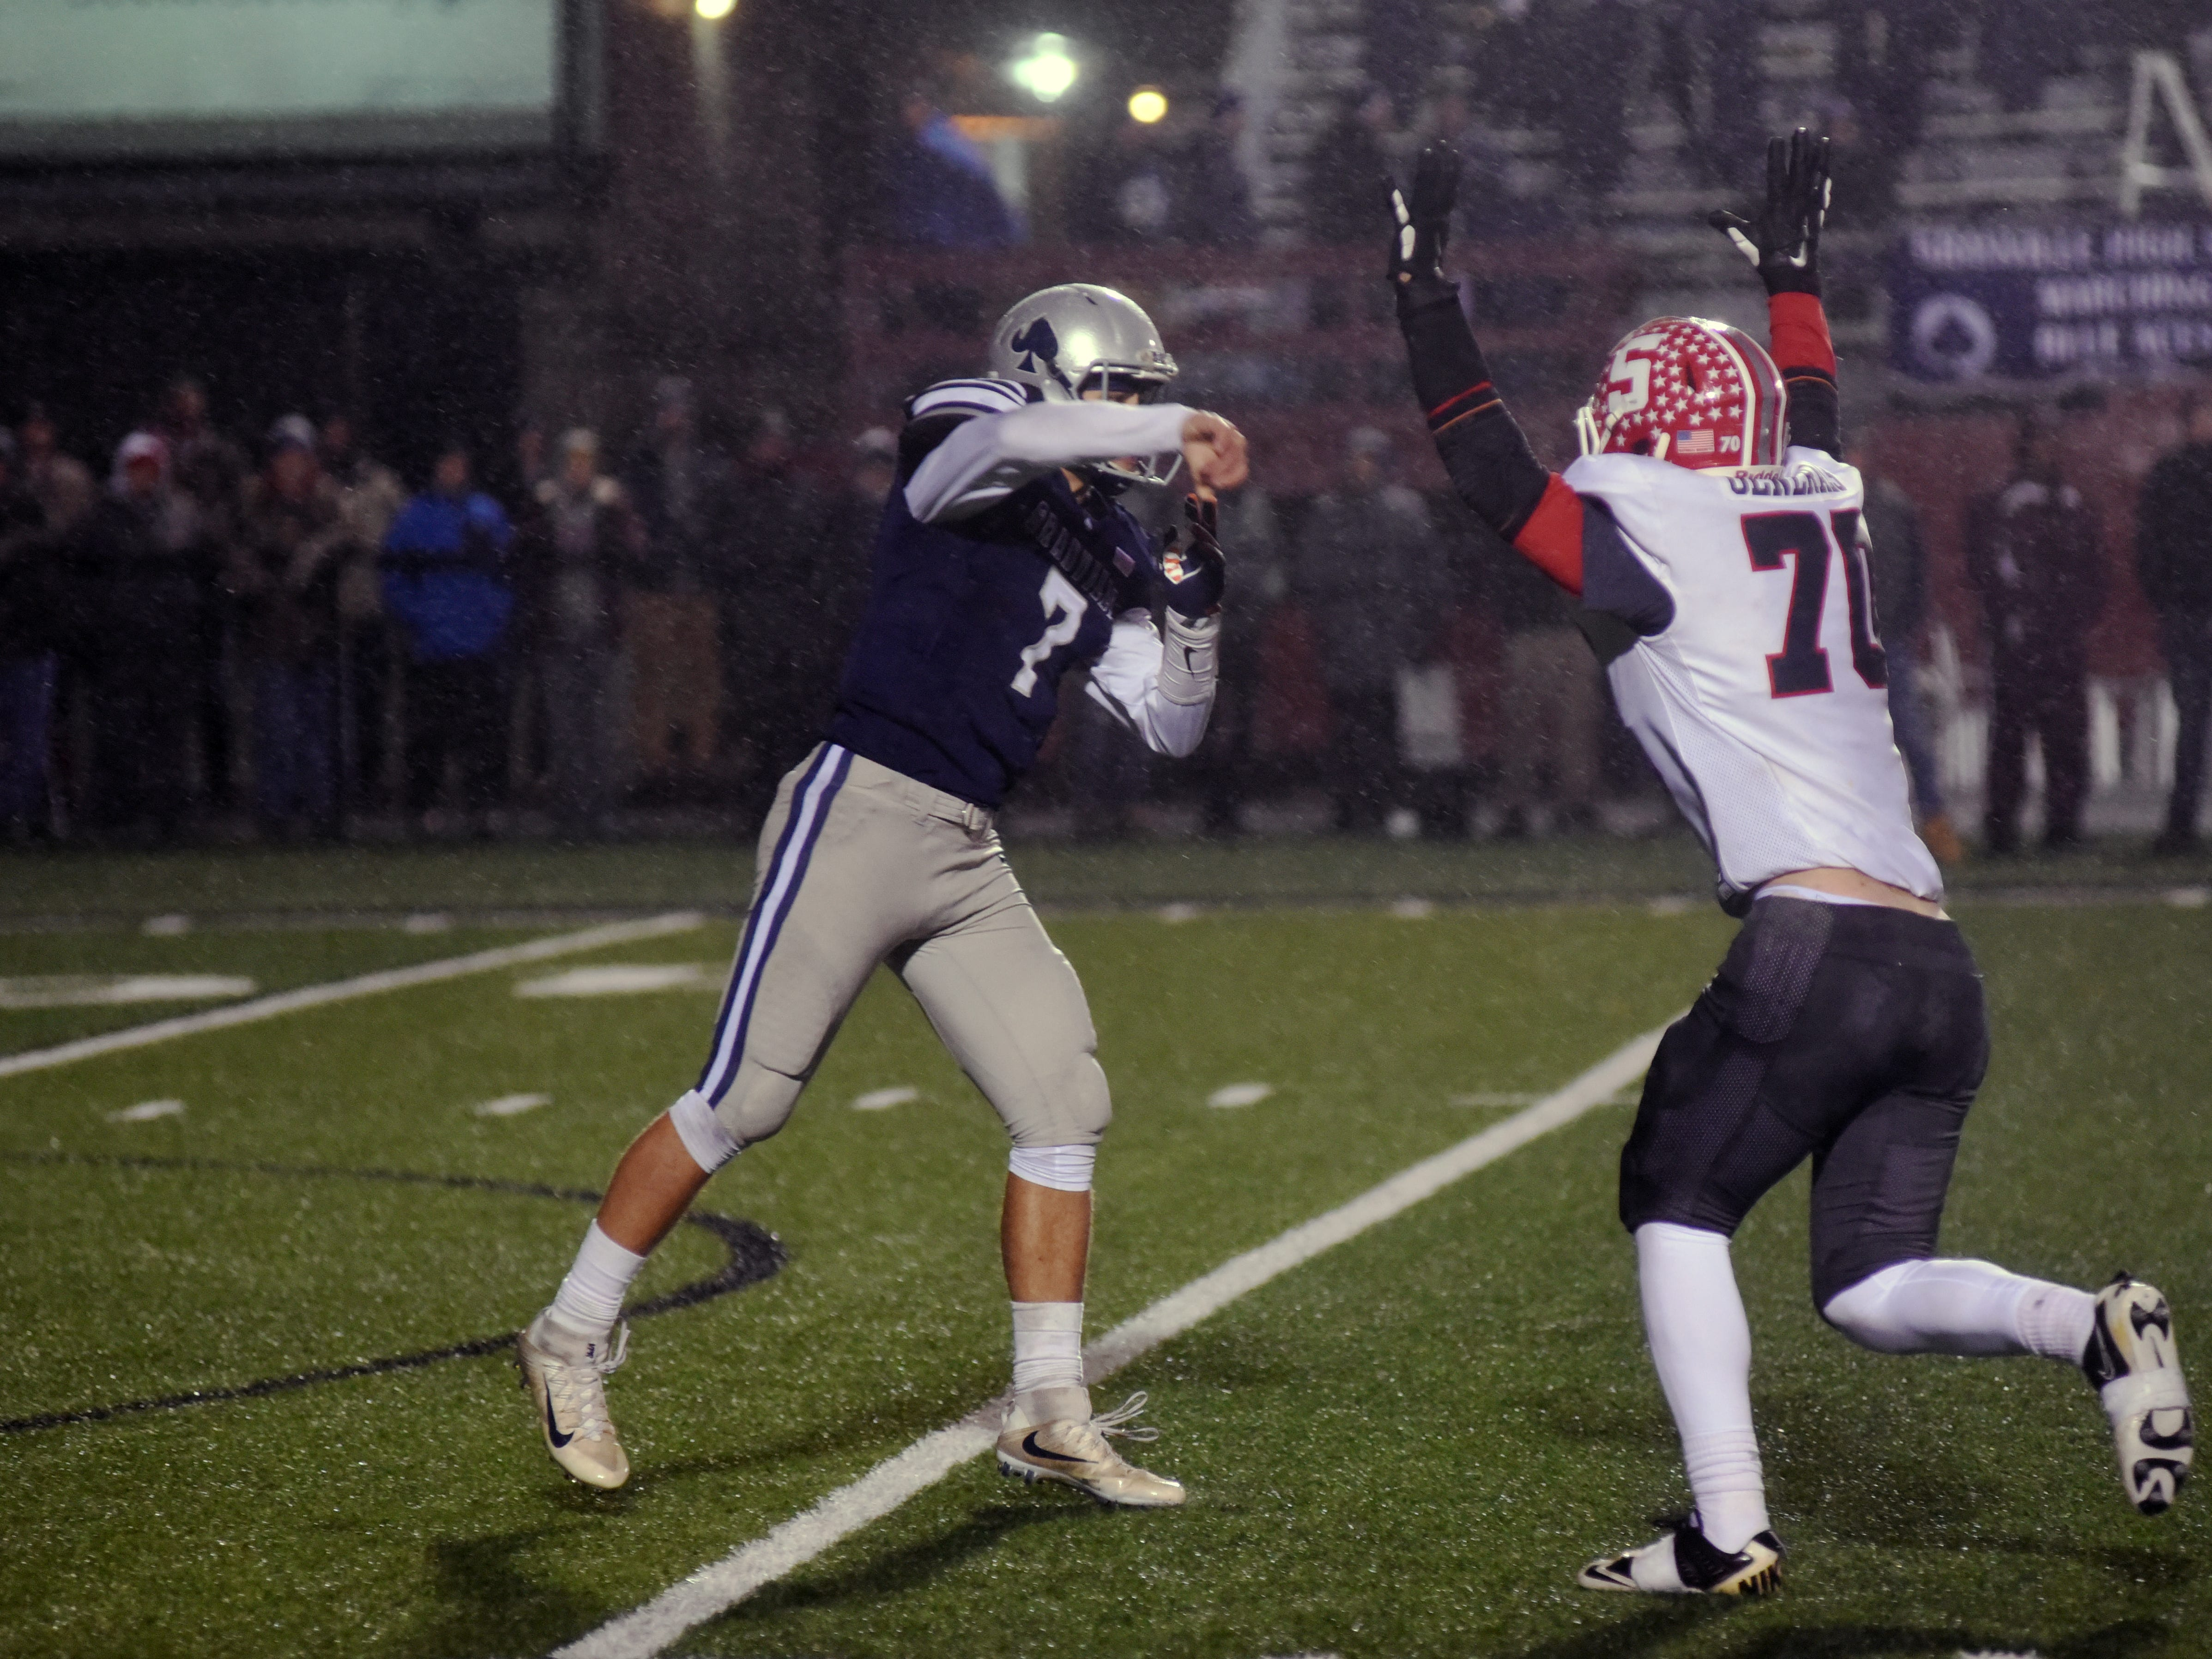 Granville's Cameron Crouch throws over a rushing Owen Loughman, of Sheridan, in a Division III, Region 11 semifinal at White Field.